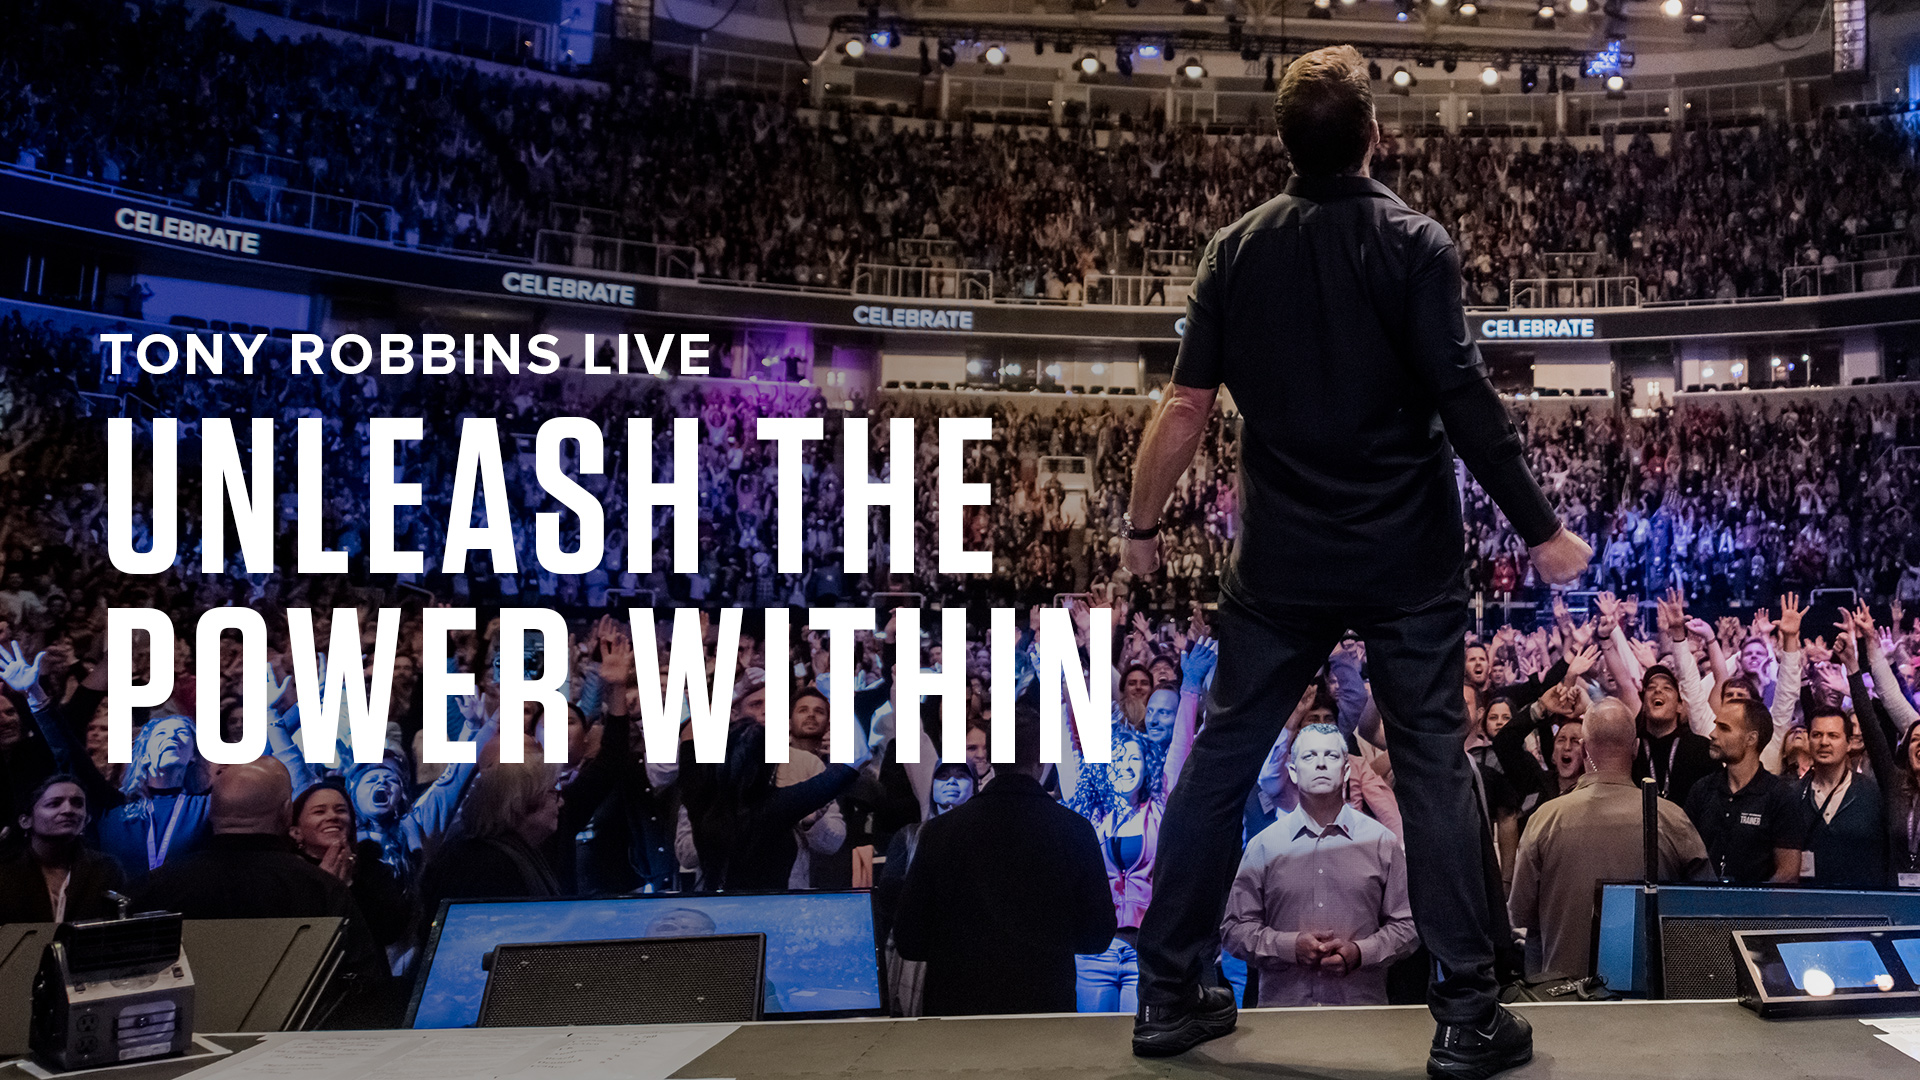 General Admission for Unleash the Power Within in Newark 11/8/18 to 11/11/18